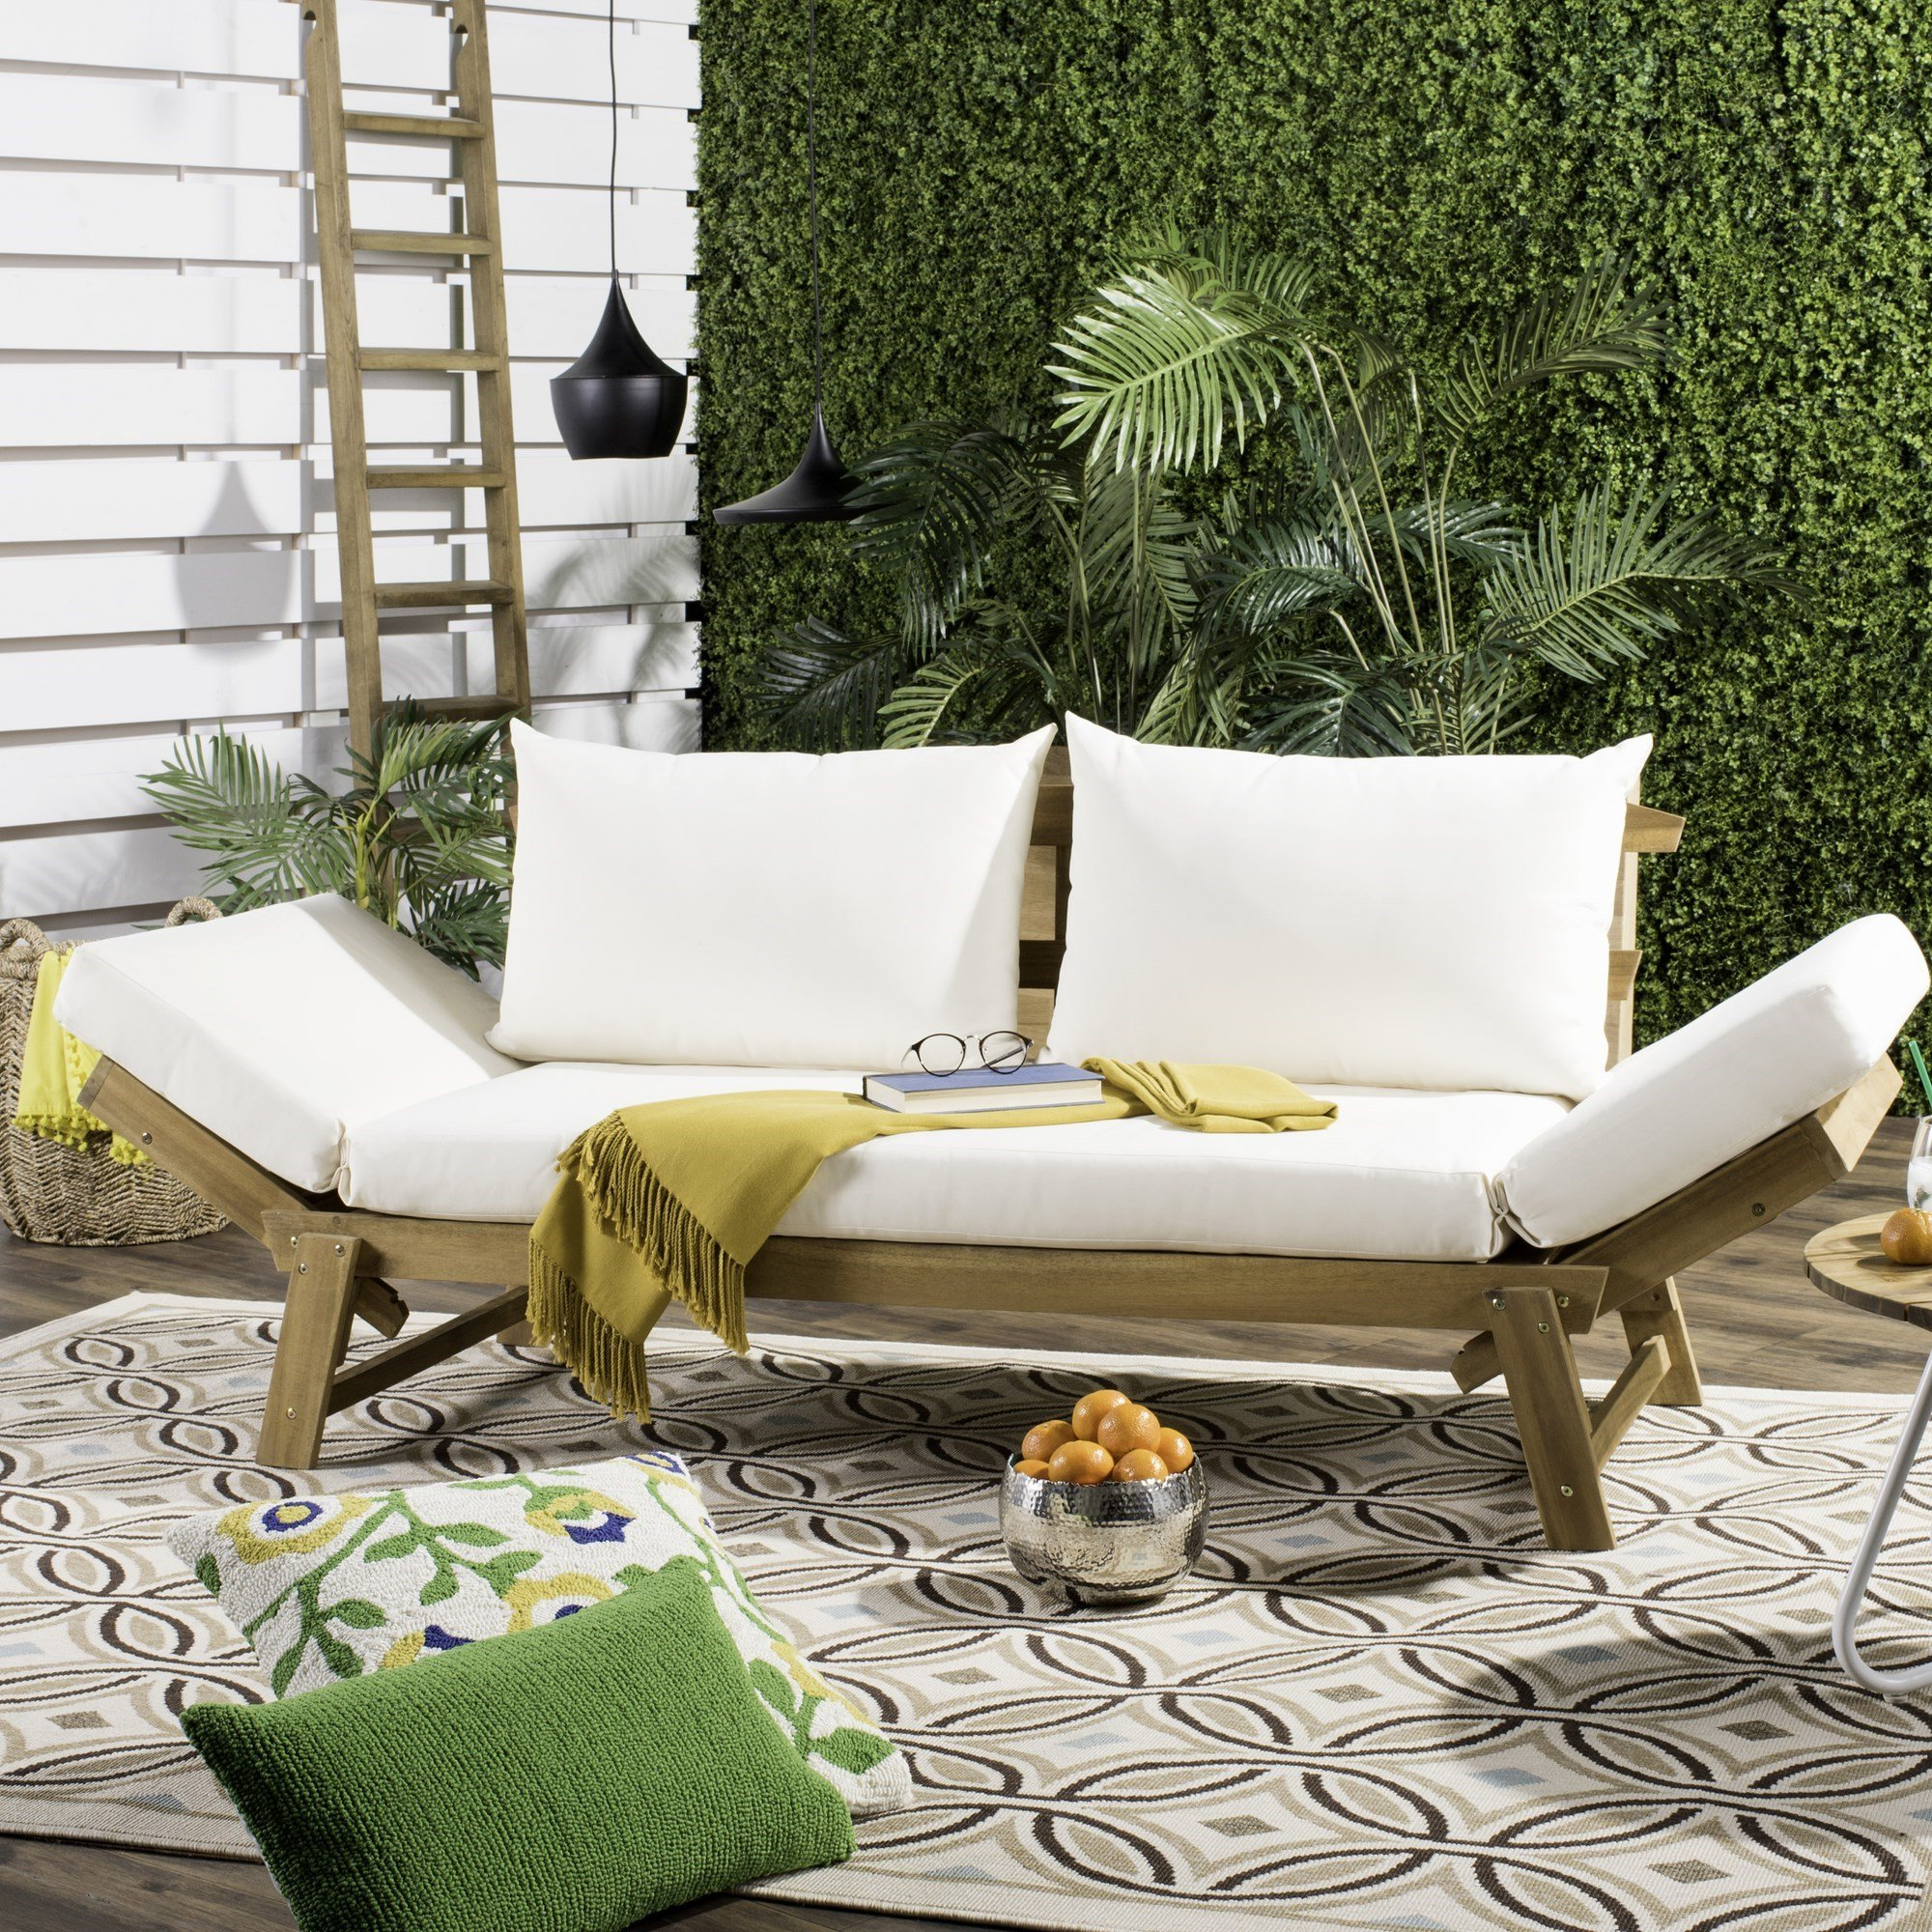 Ellanti Teak Patio Daybeds With Cushions Regarding Most Popular Birch Lane™ Heritage Beal Patio Daybed With Cushions (View 7 of 20)